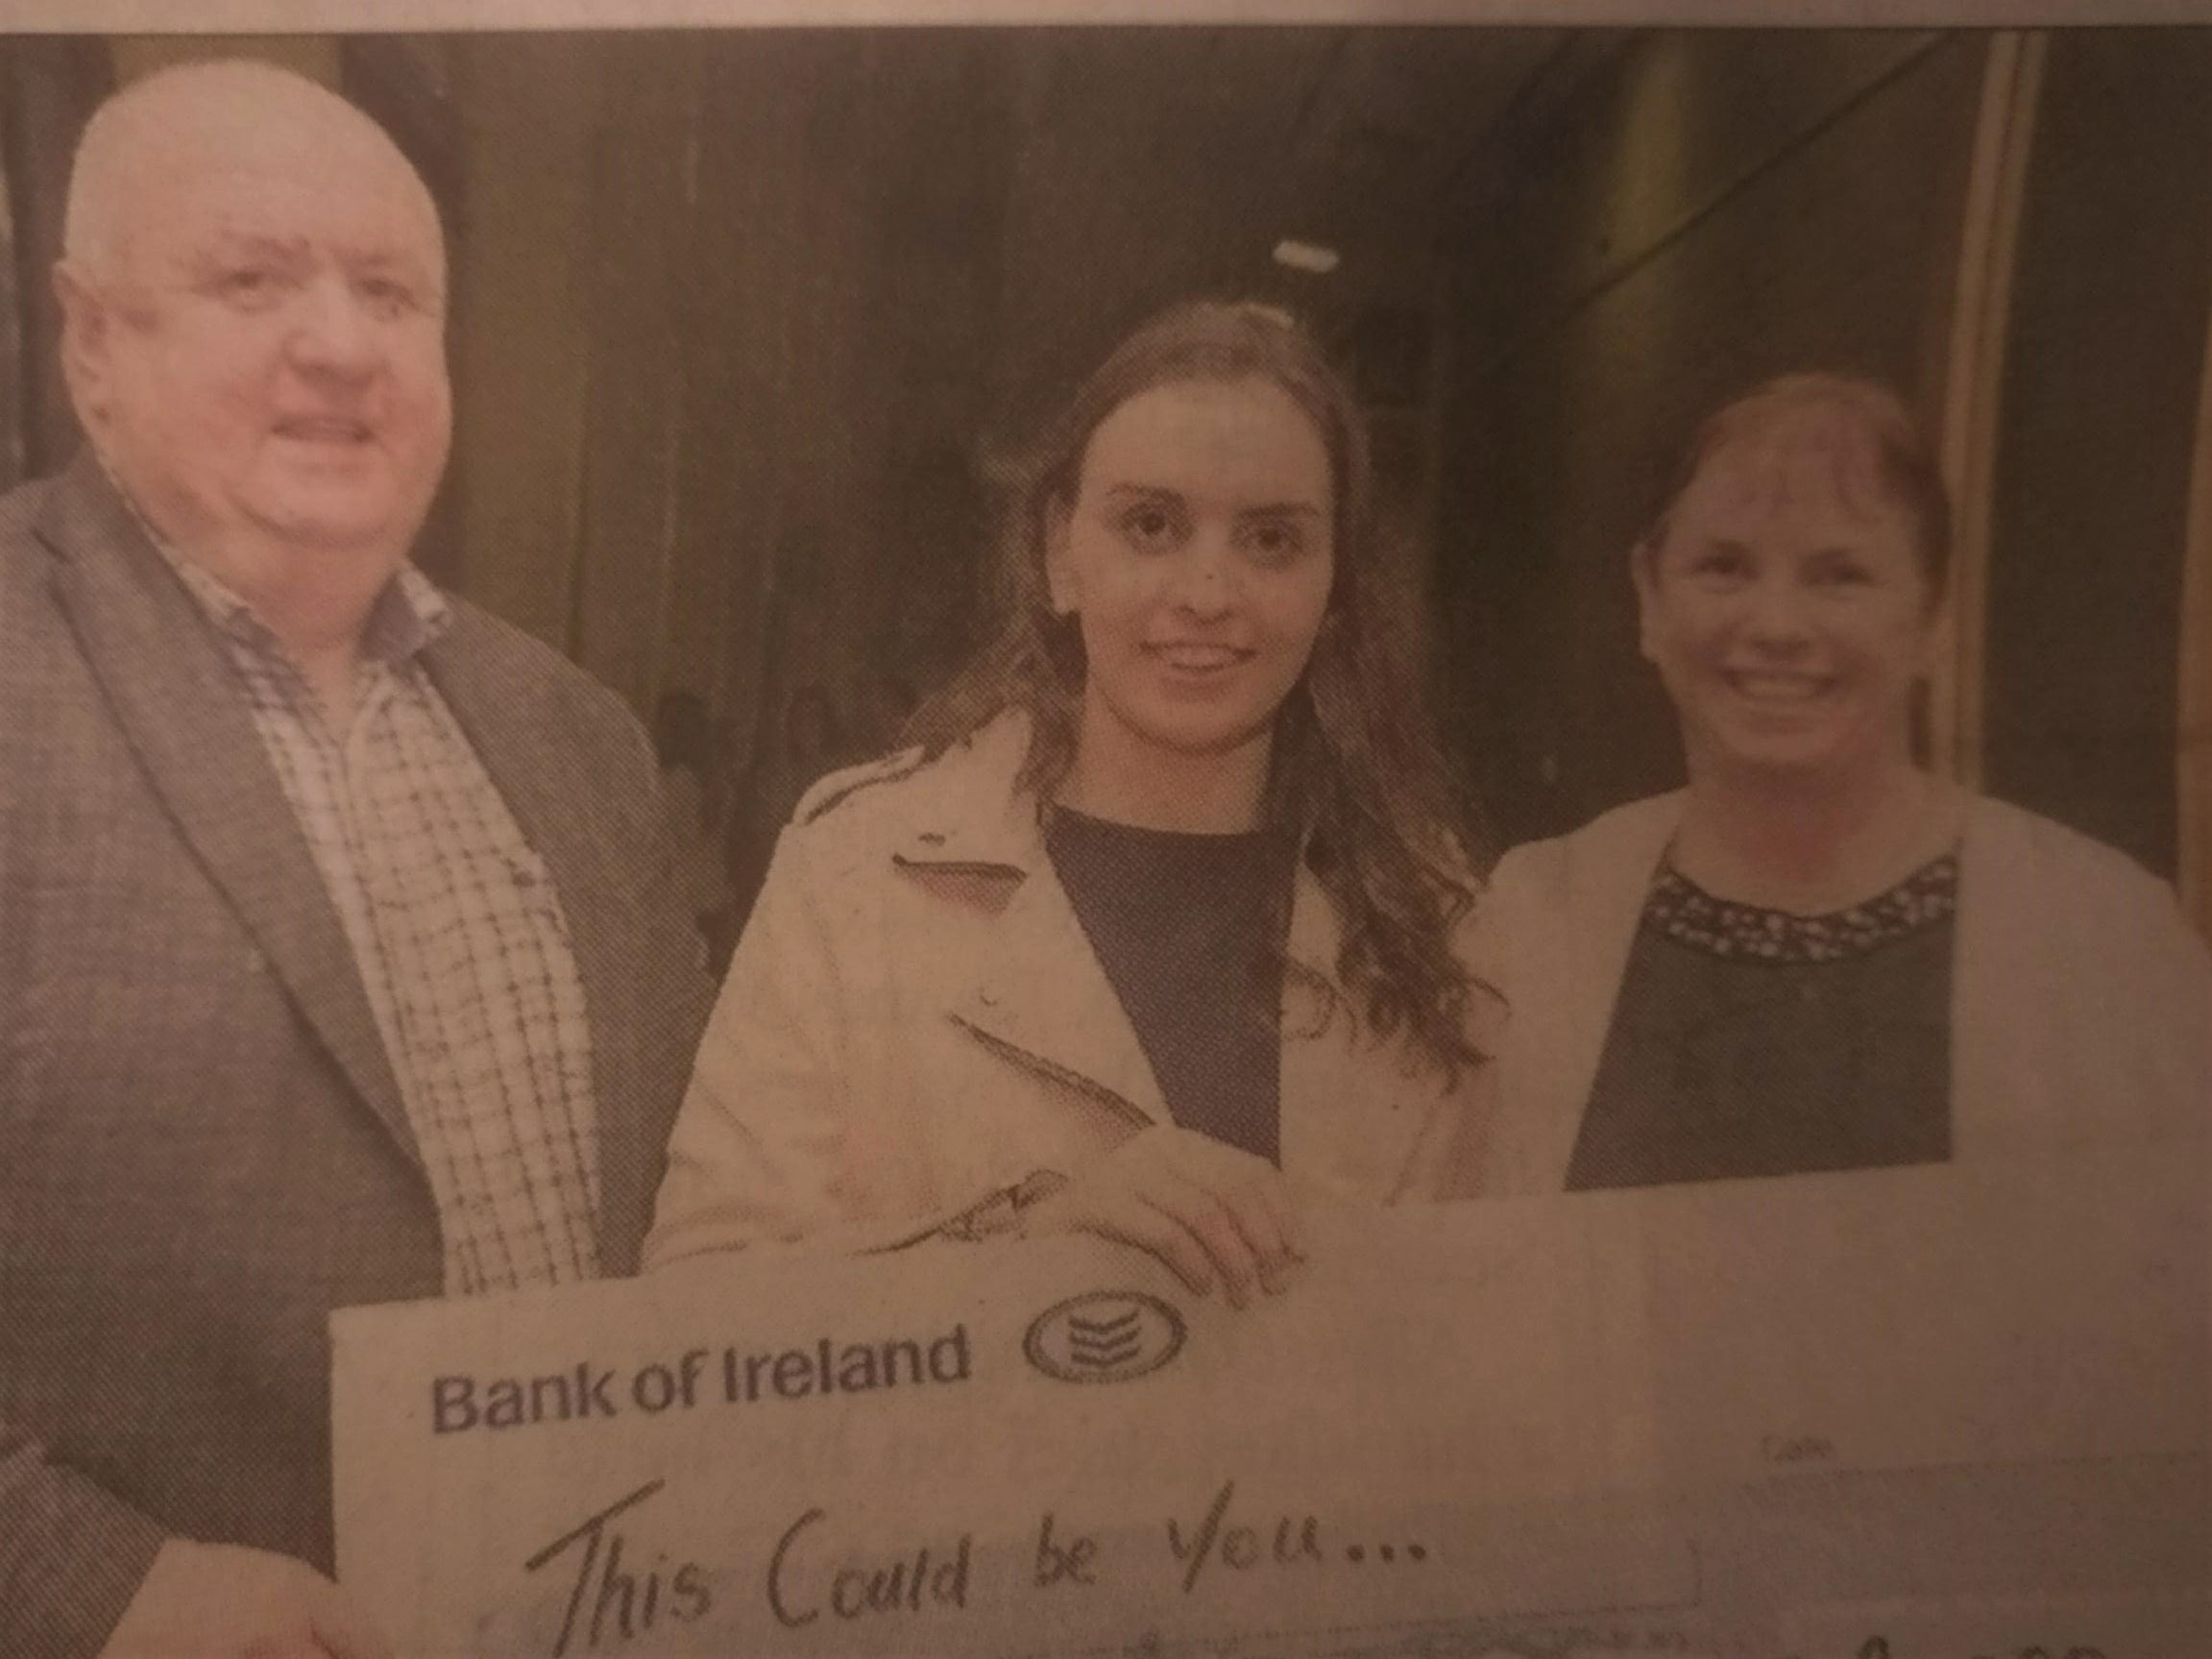 Deirdre O'Callaghan is studying BEd in education. Included in the photograph with Deirdre is her dad Noel and her mum Ann.